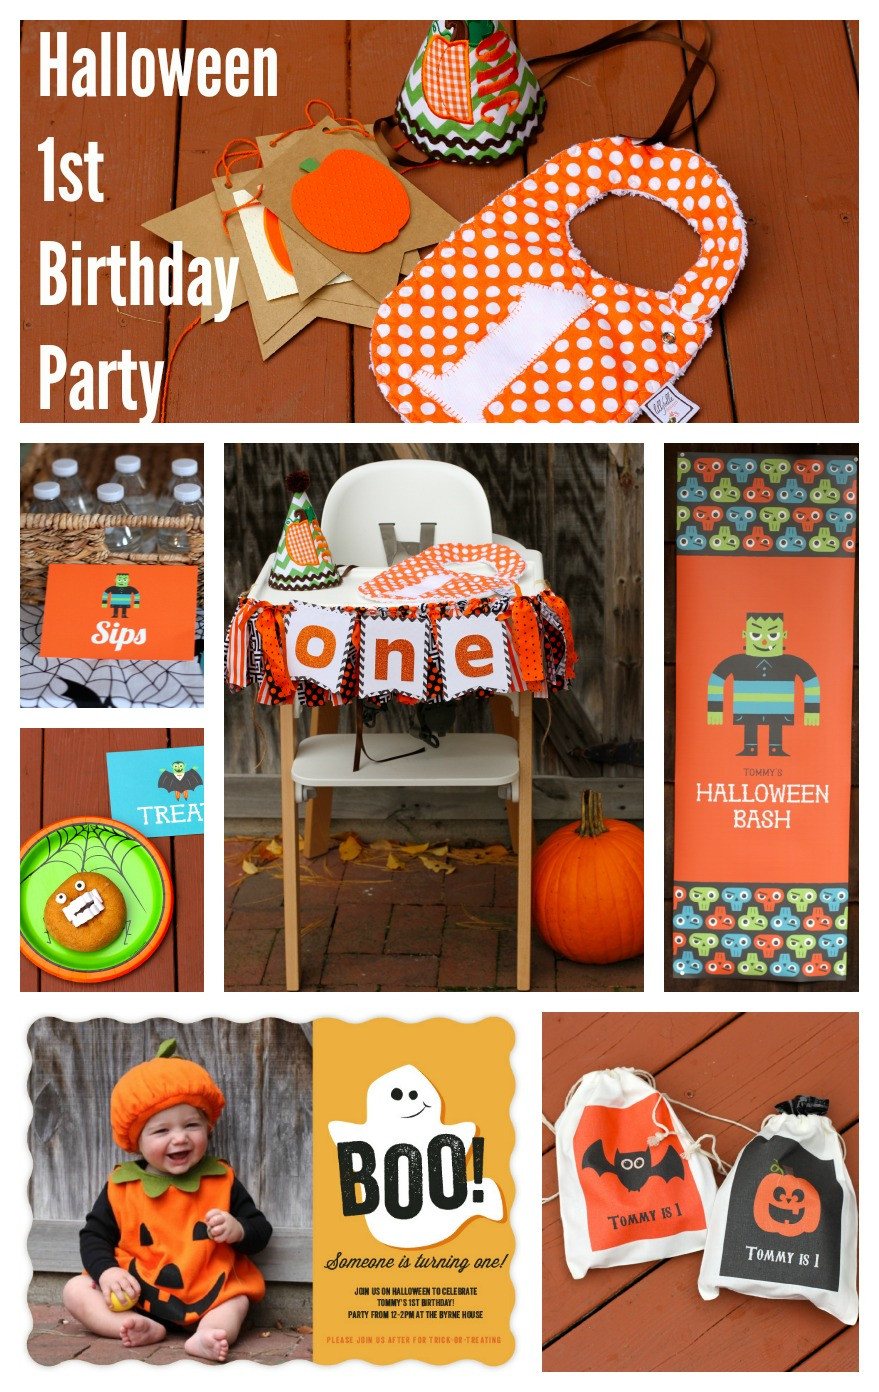 First Birthday Halloween Party Ideas  A Halloween First Birthday Party Invites Decor and Party